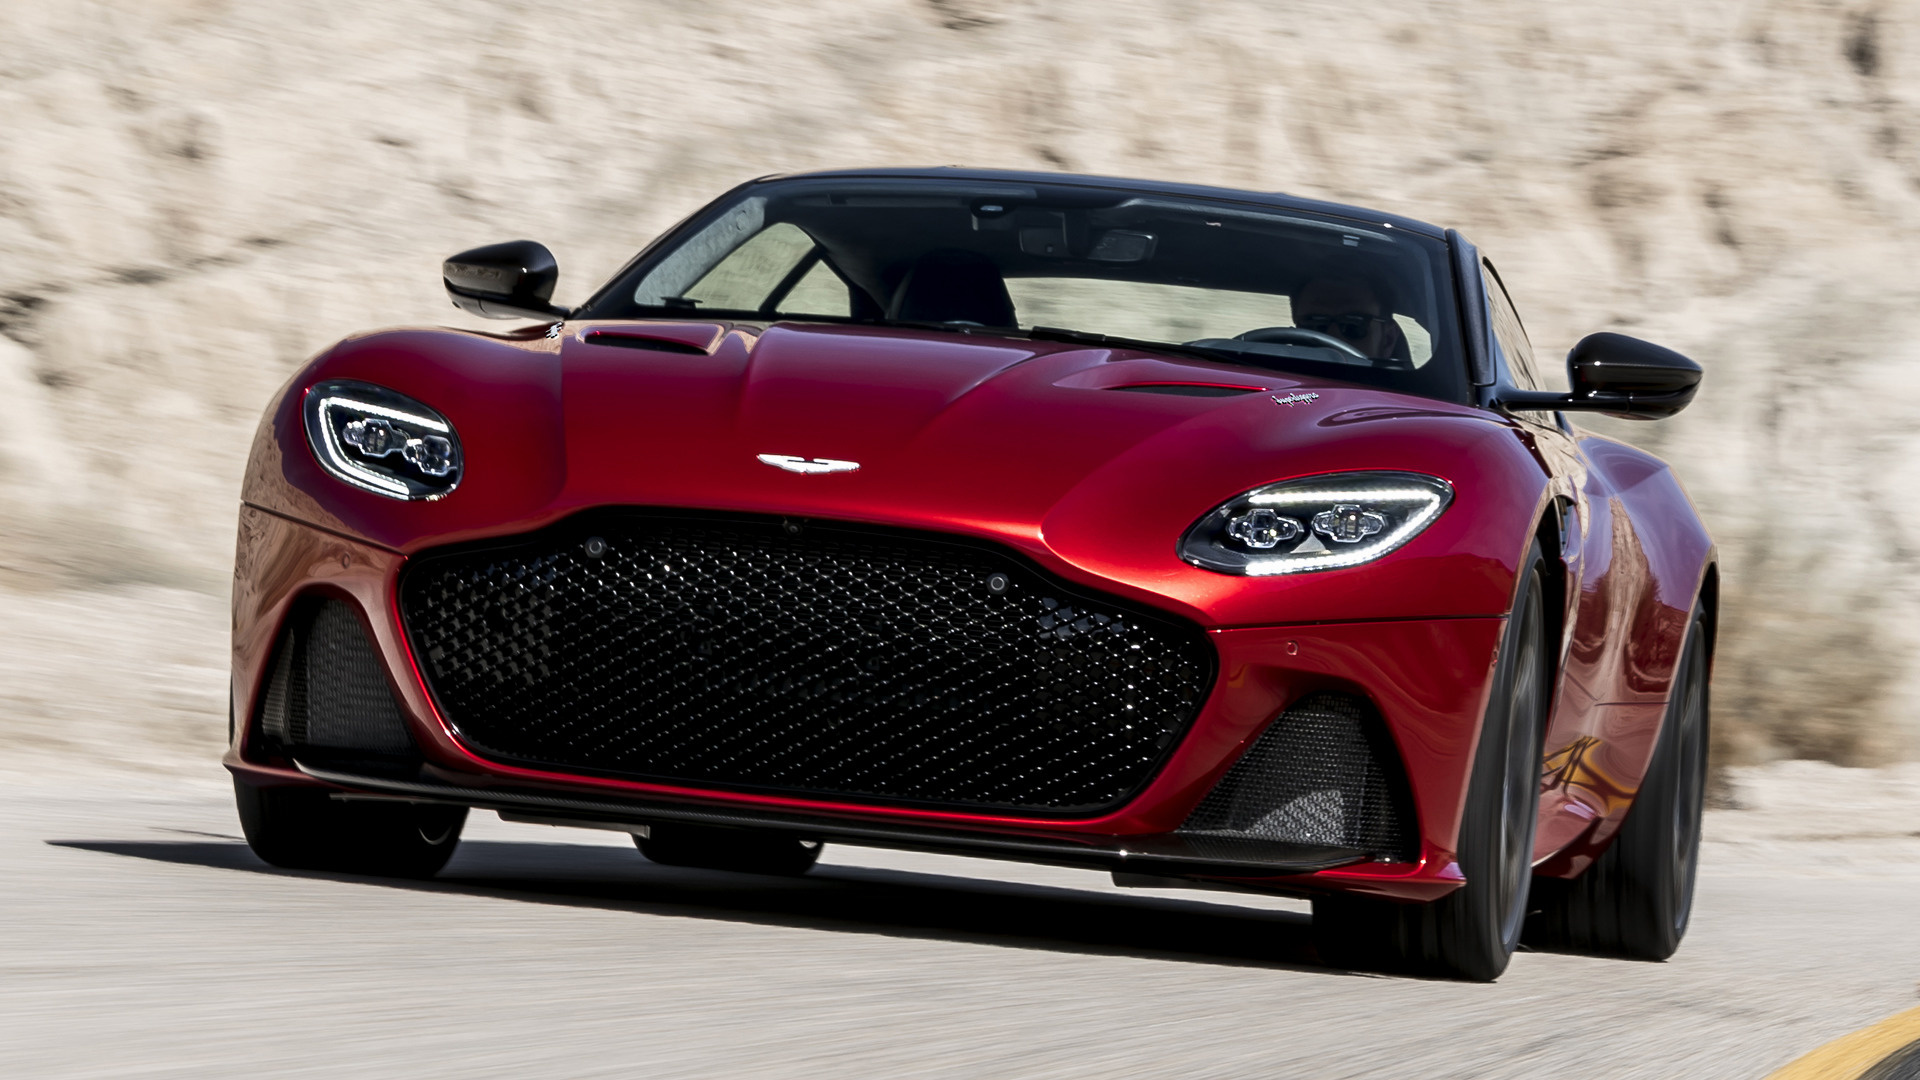 2018 Aston Martin Dbs Superleggera Wallpapers And Hd Images